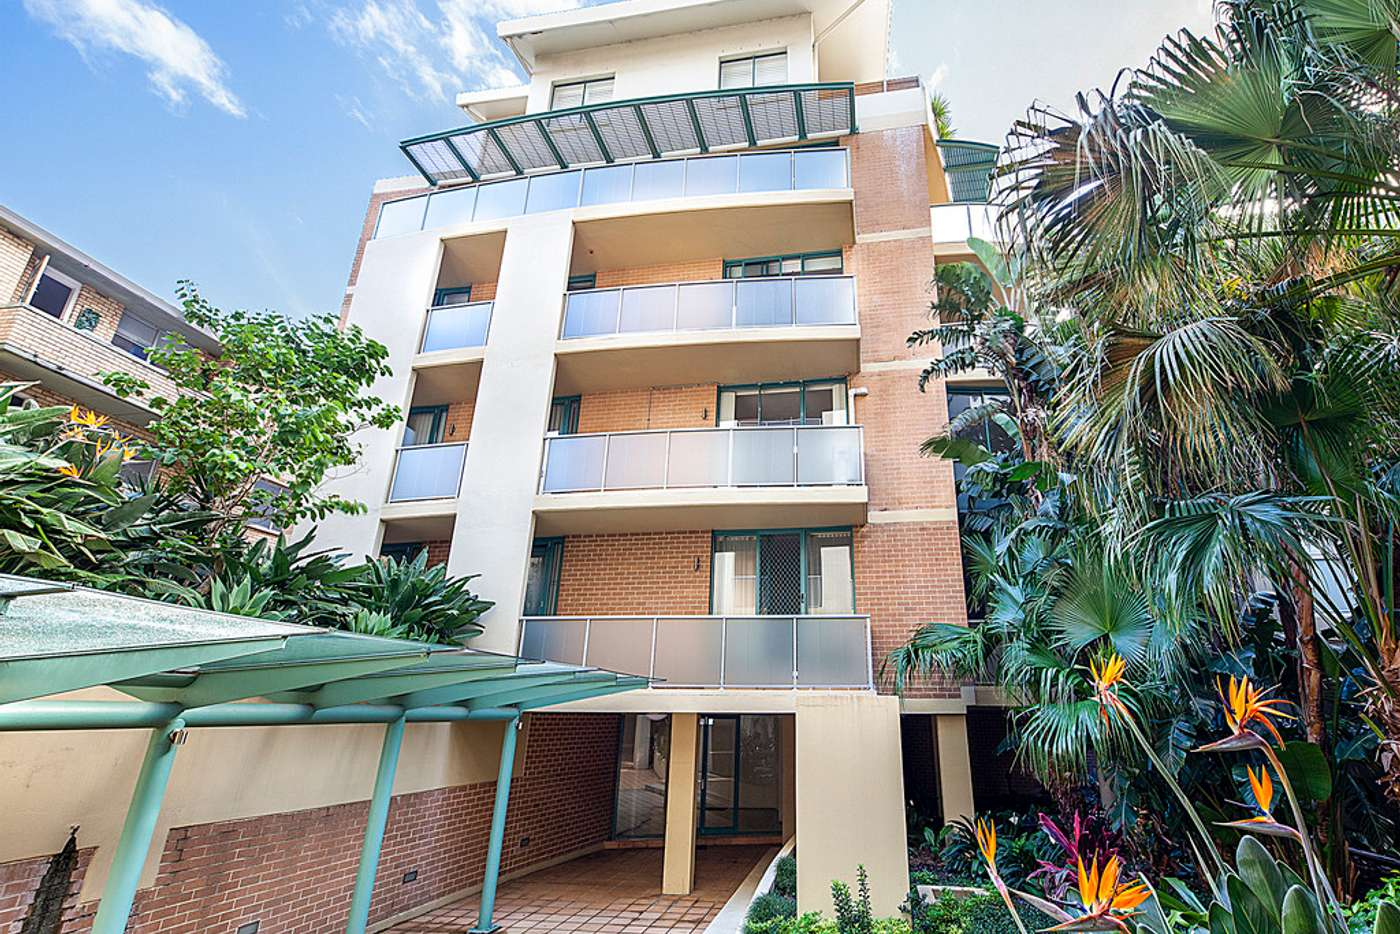 Main view of Homely apartment listing, 34/805 ANZAC PARADE, Maroubra NSW 2035